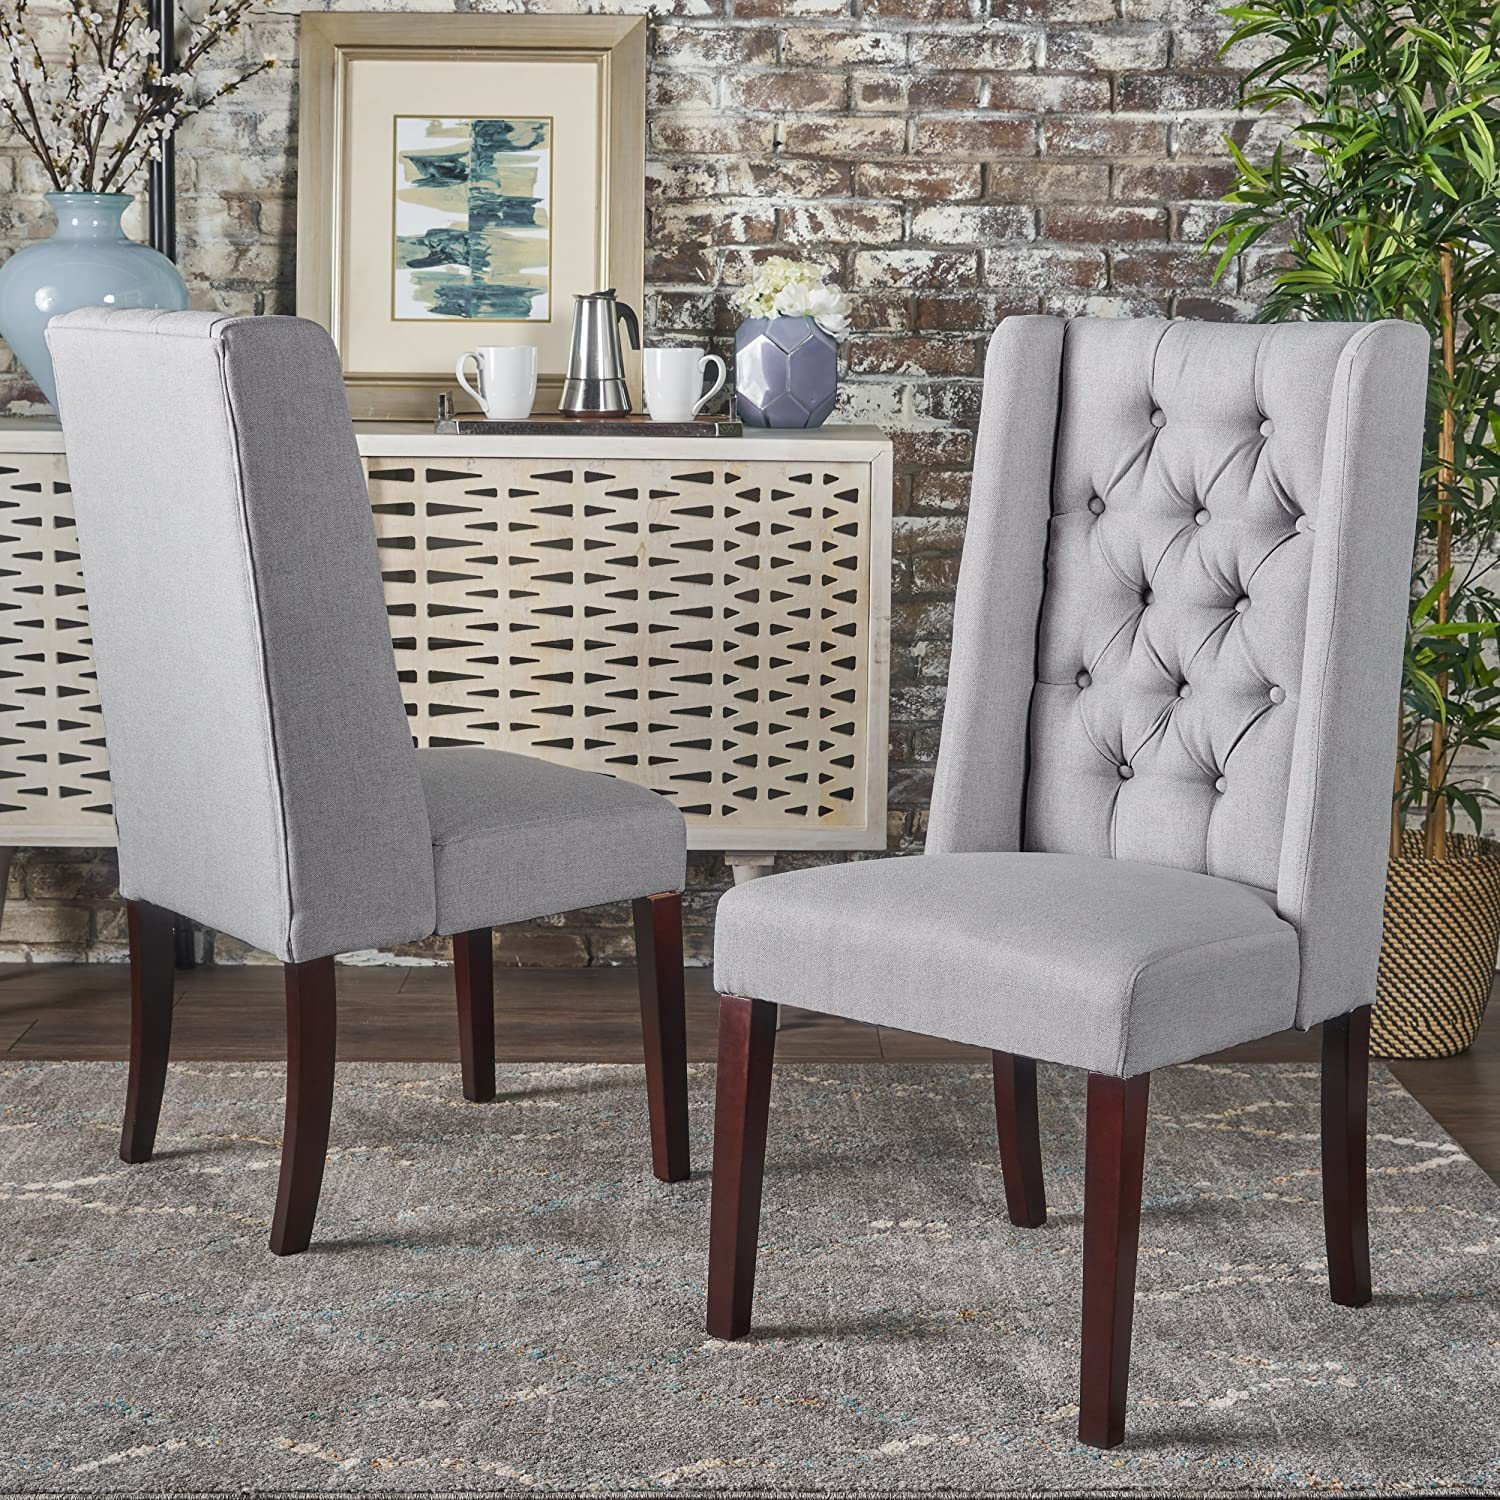 Christopher Knight Home 302096 Blythe Dining Chair Set, Light Grey/Brown